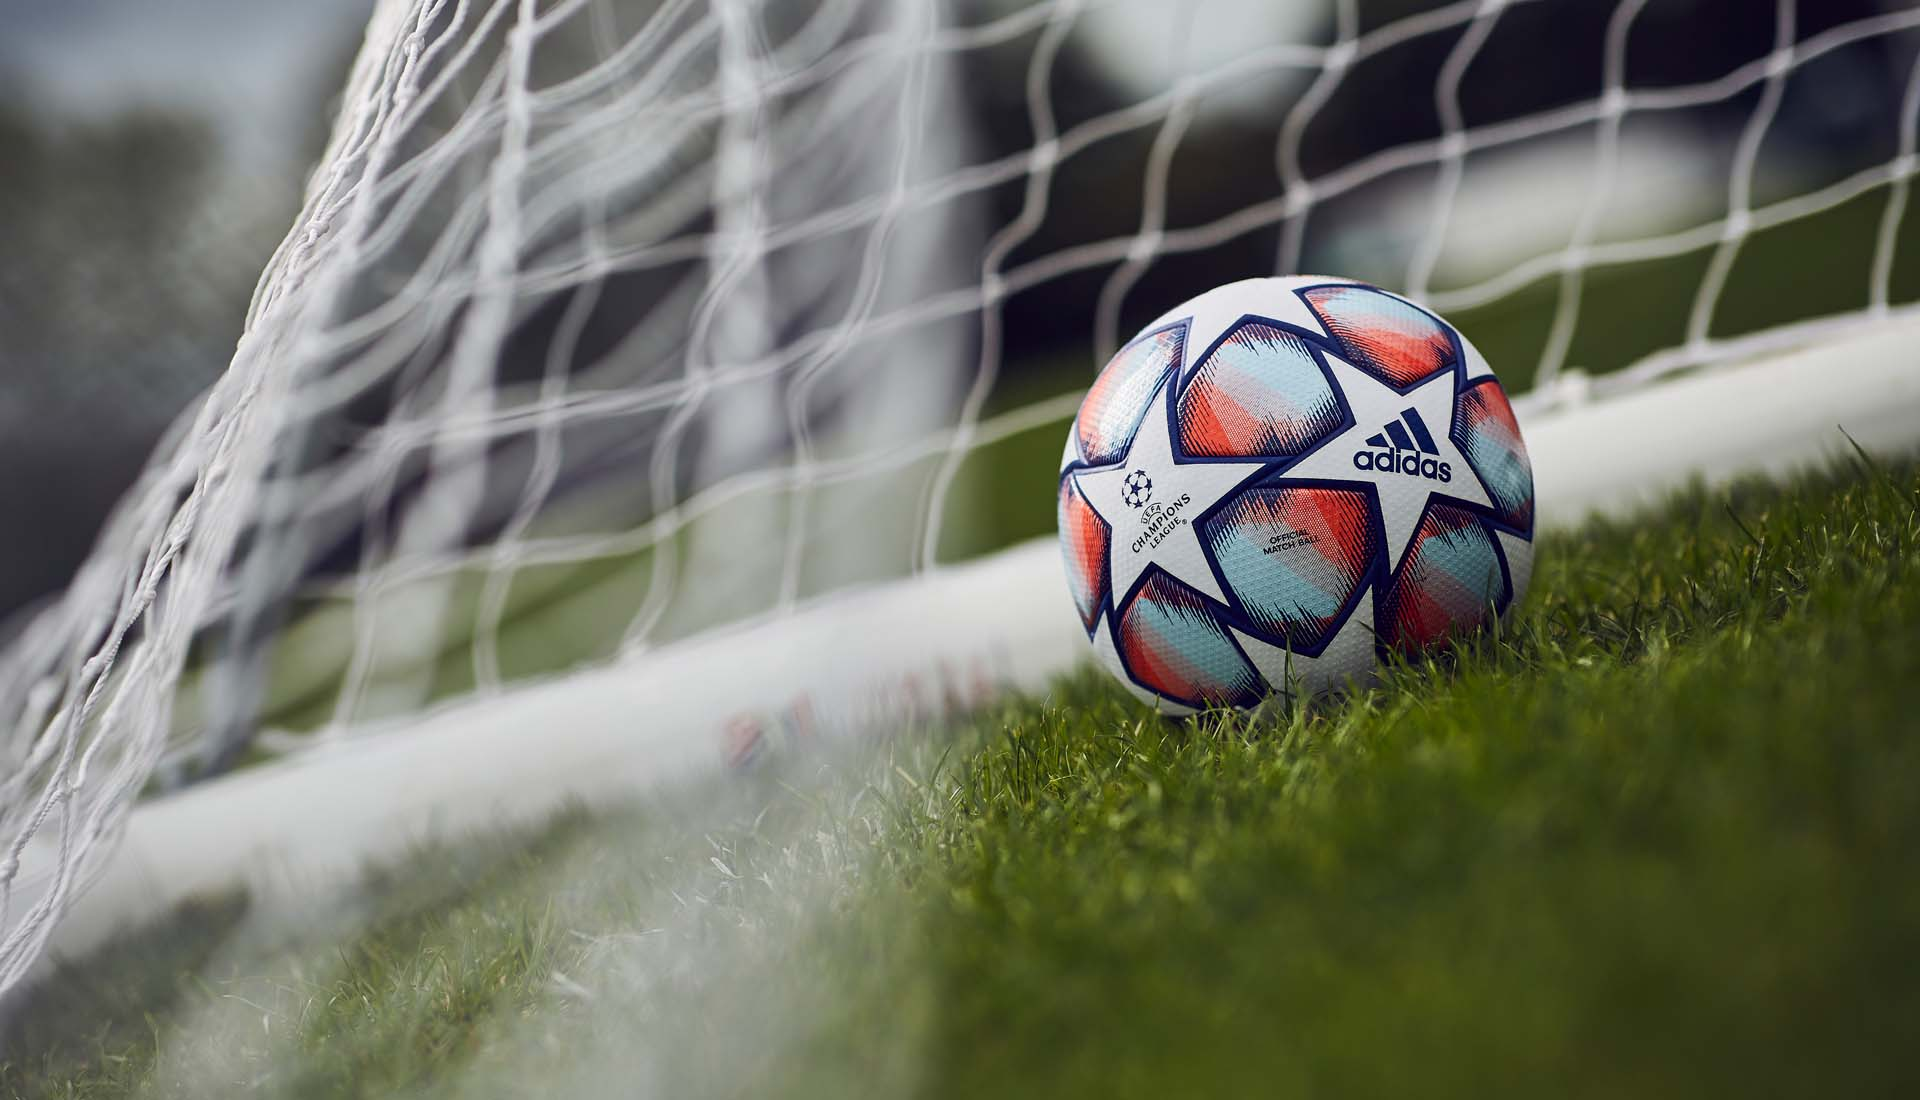 The Best Champions League Ball 2021